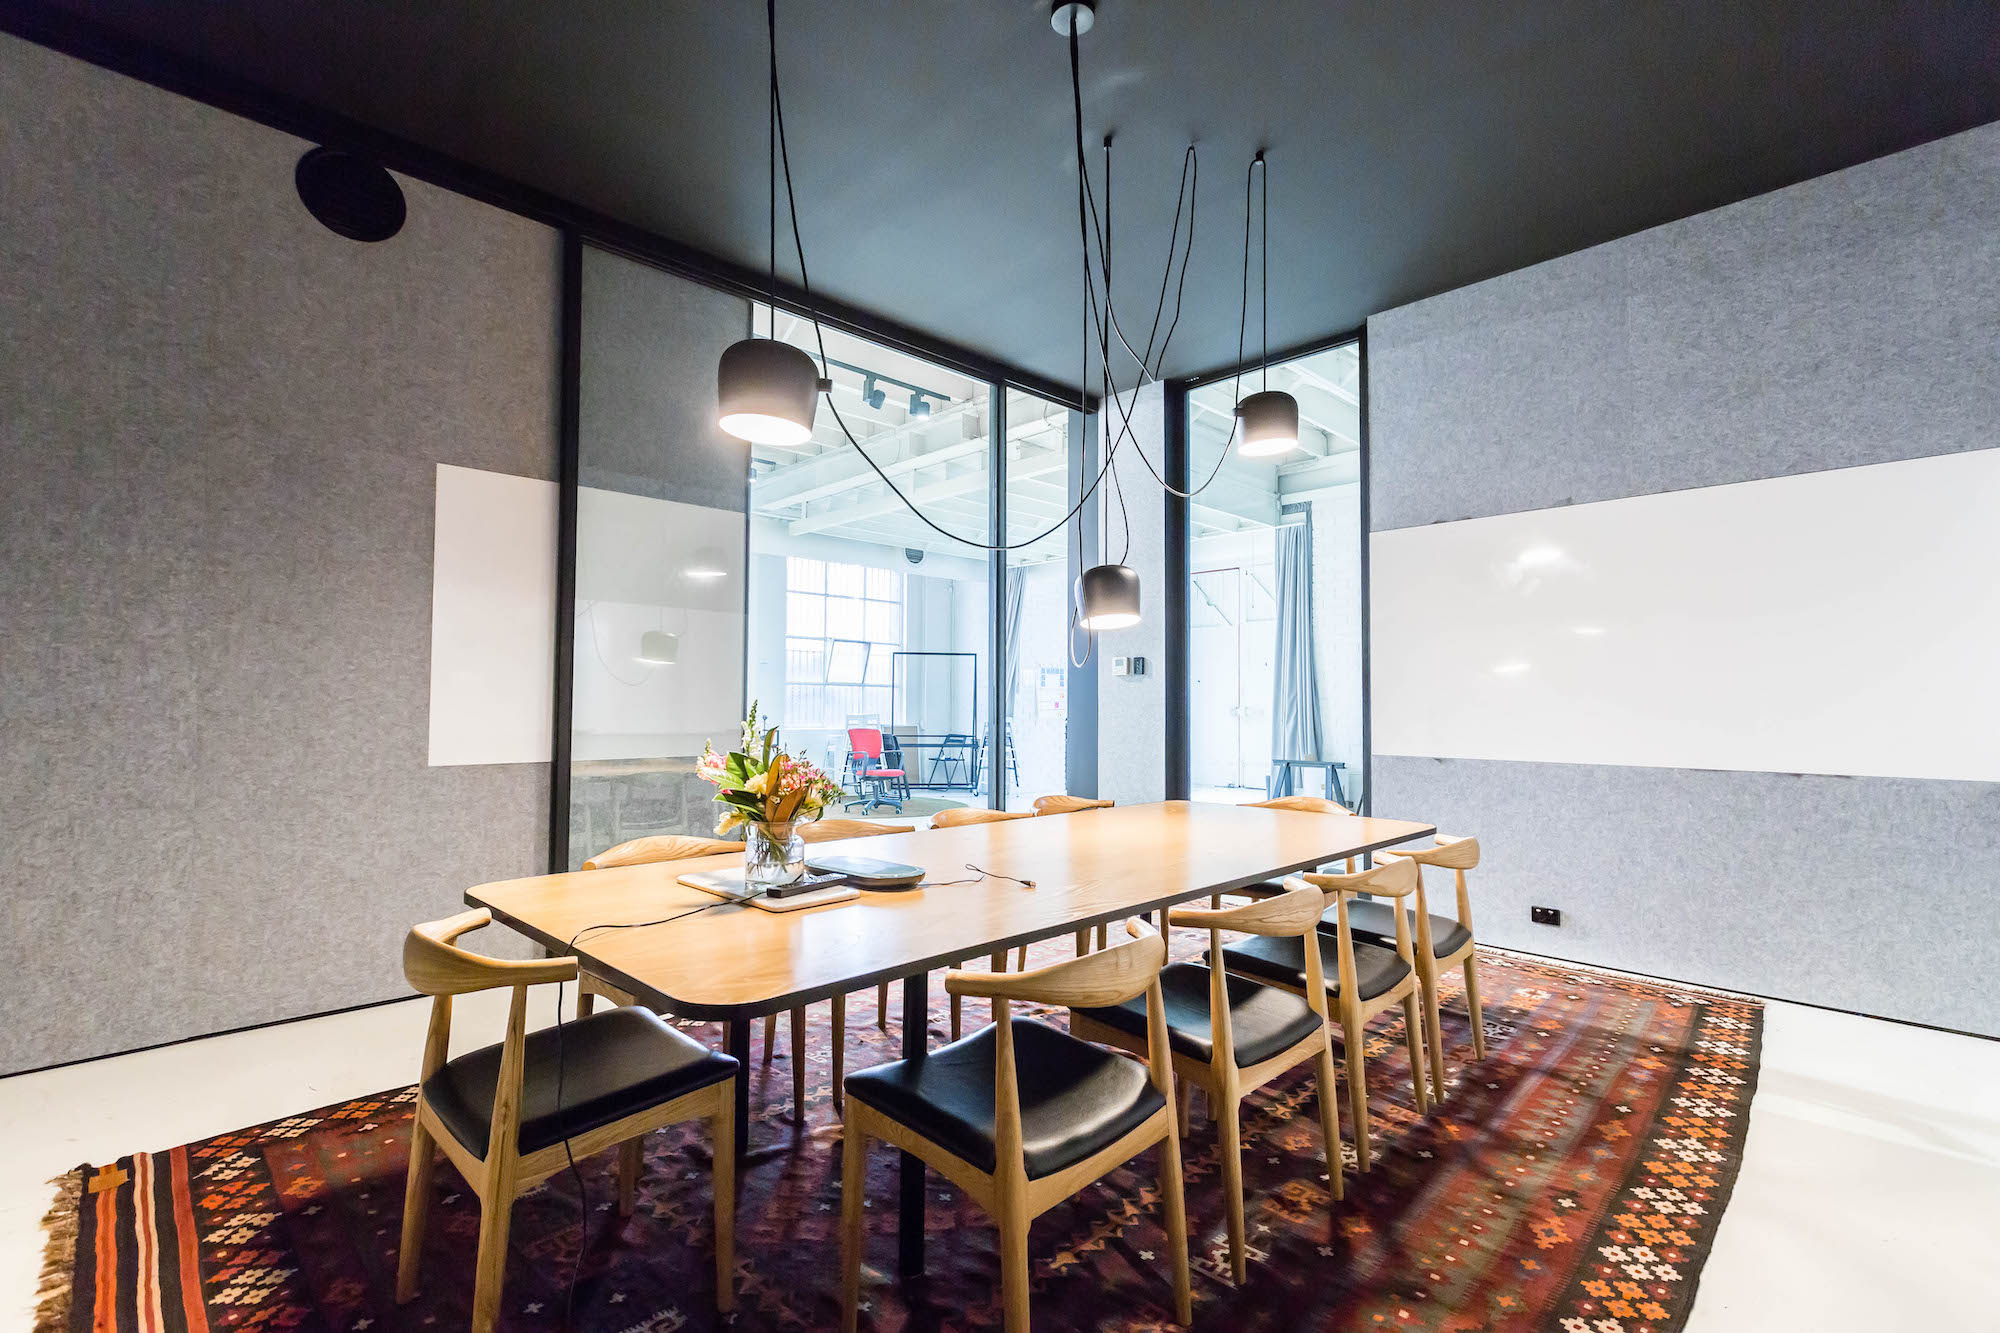 """Boardroom - 4 Brunswick Place - The Boardroom at 4 Brunswick Place conformably seats 10-12. A 65"""" OLED TV with Apple TV also available for presentations.$500 per day ($80 per hour)"""